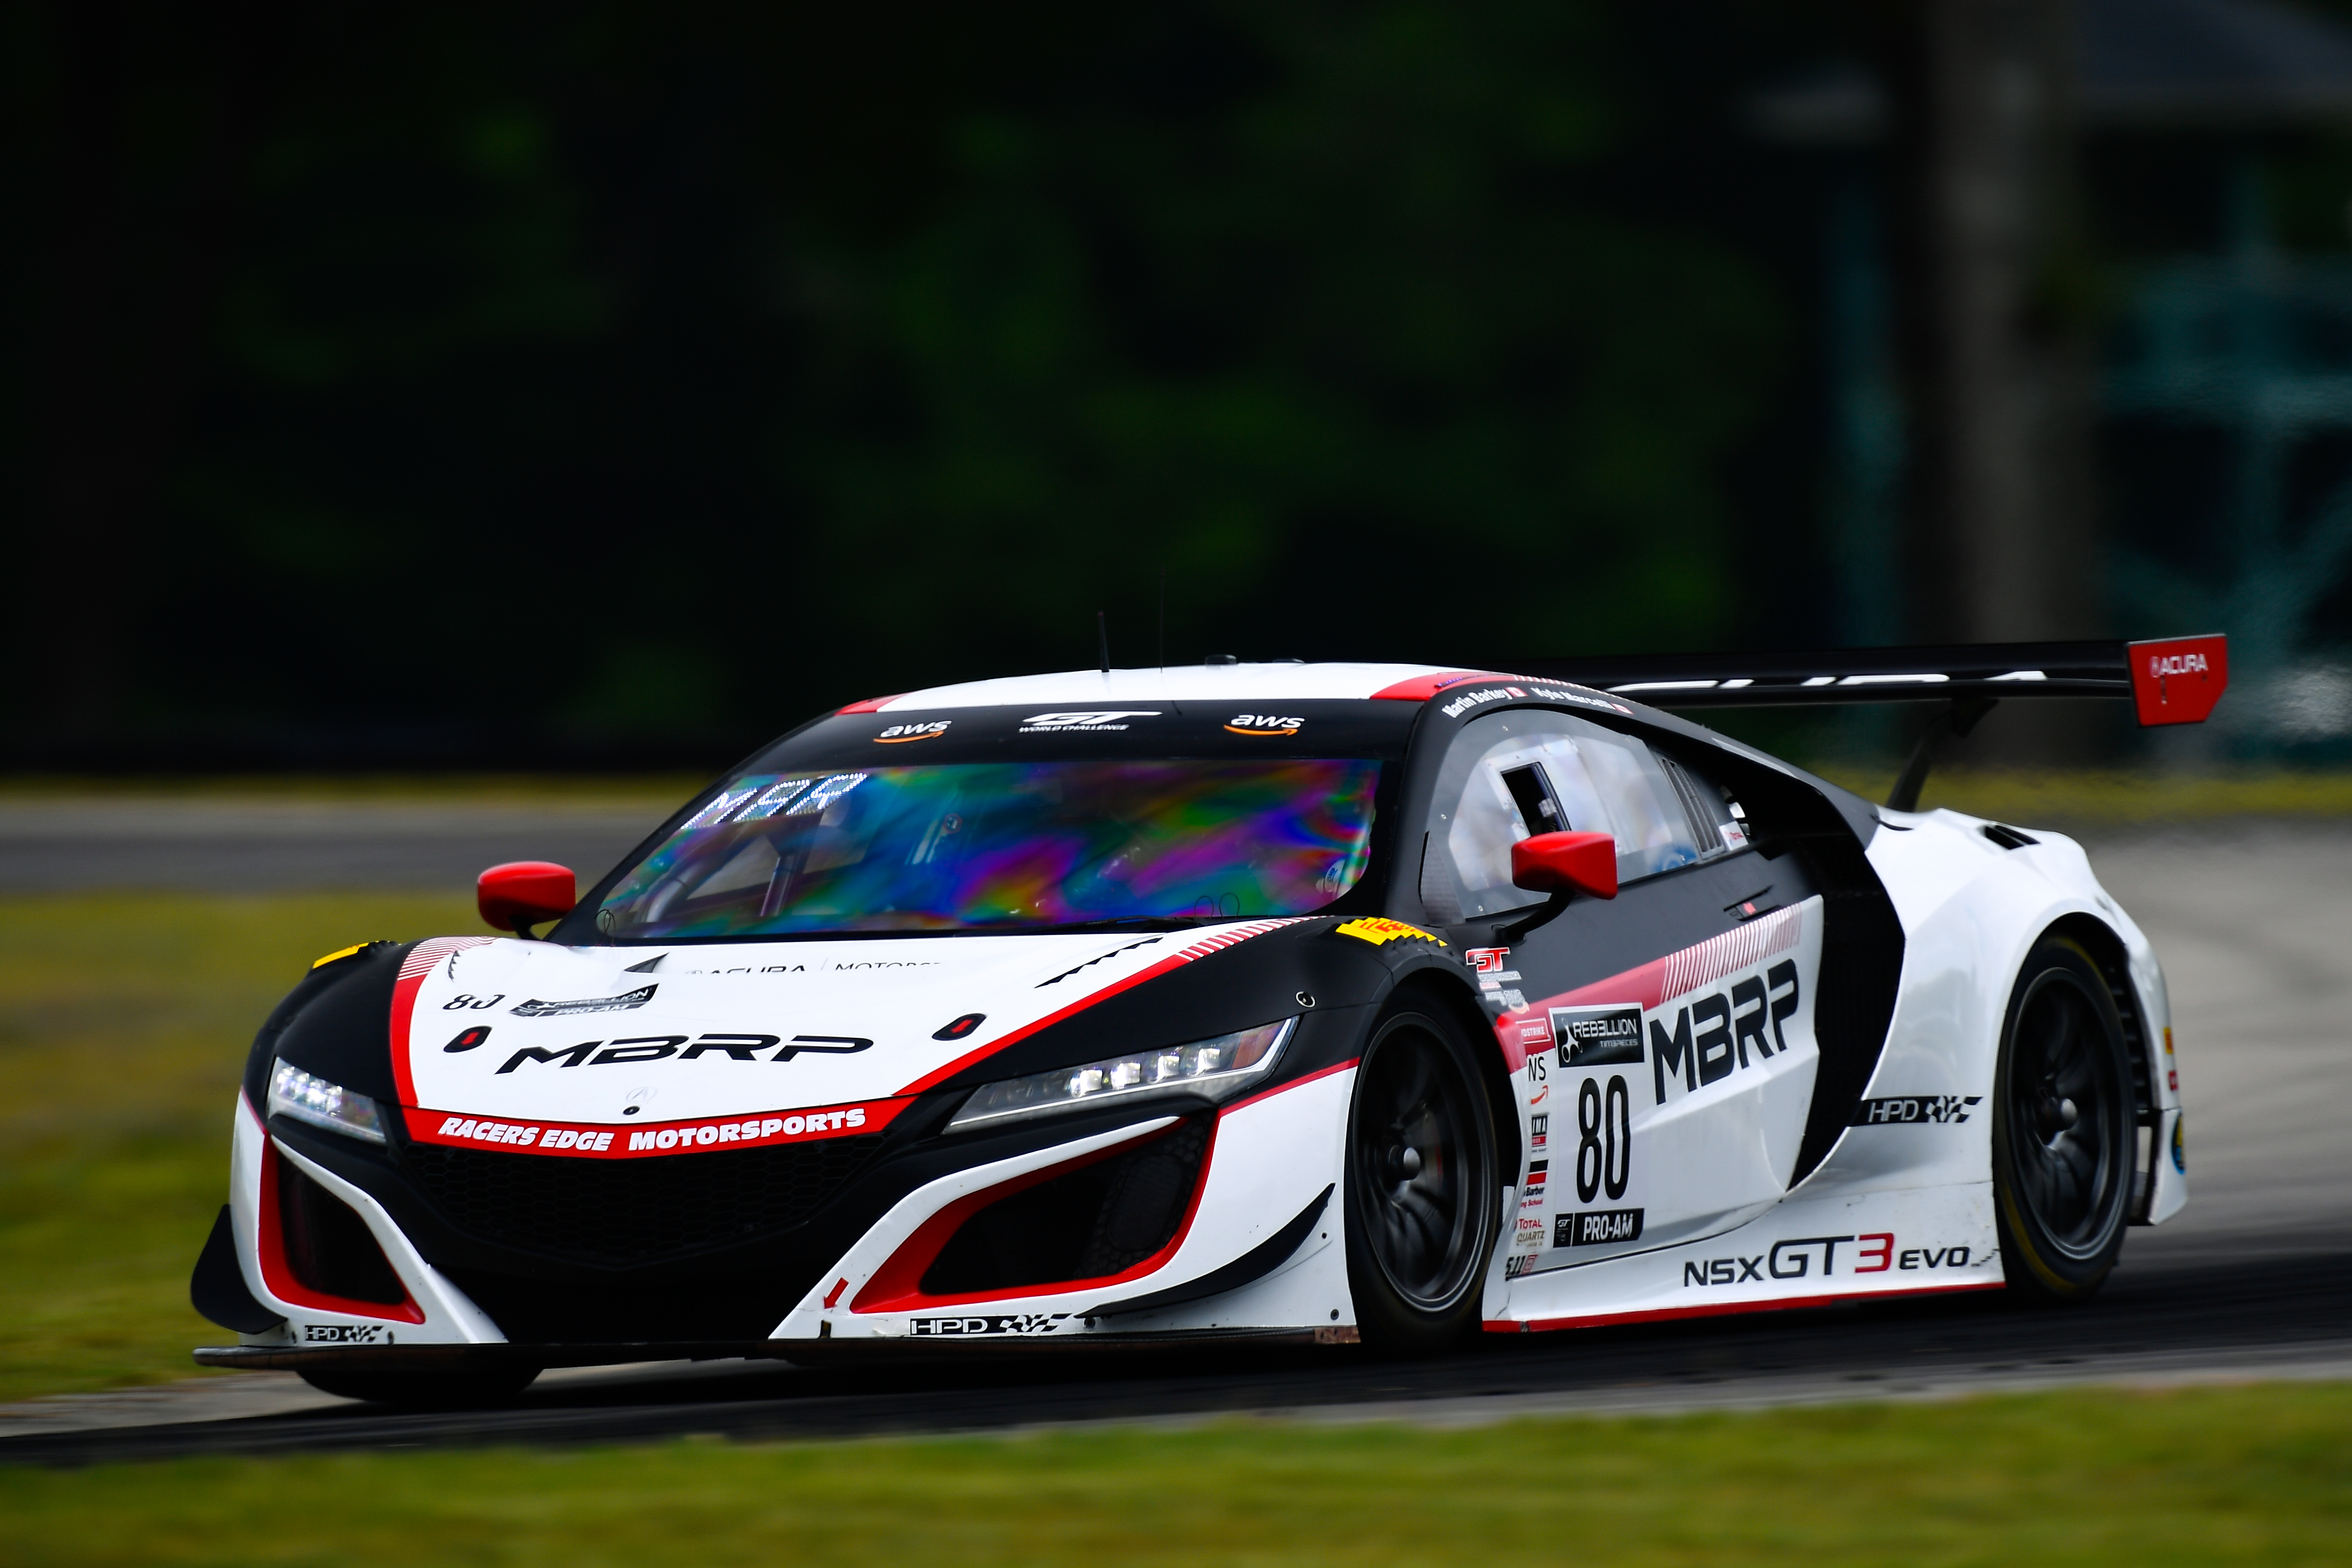 80 MBRP Acura NSX GT3 Evo